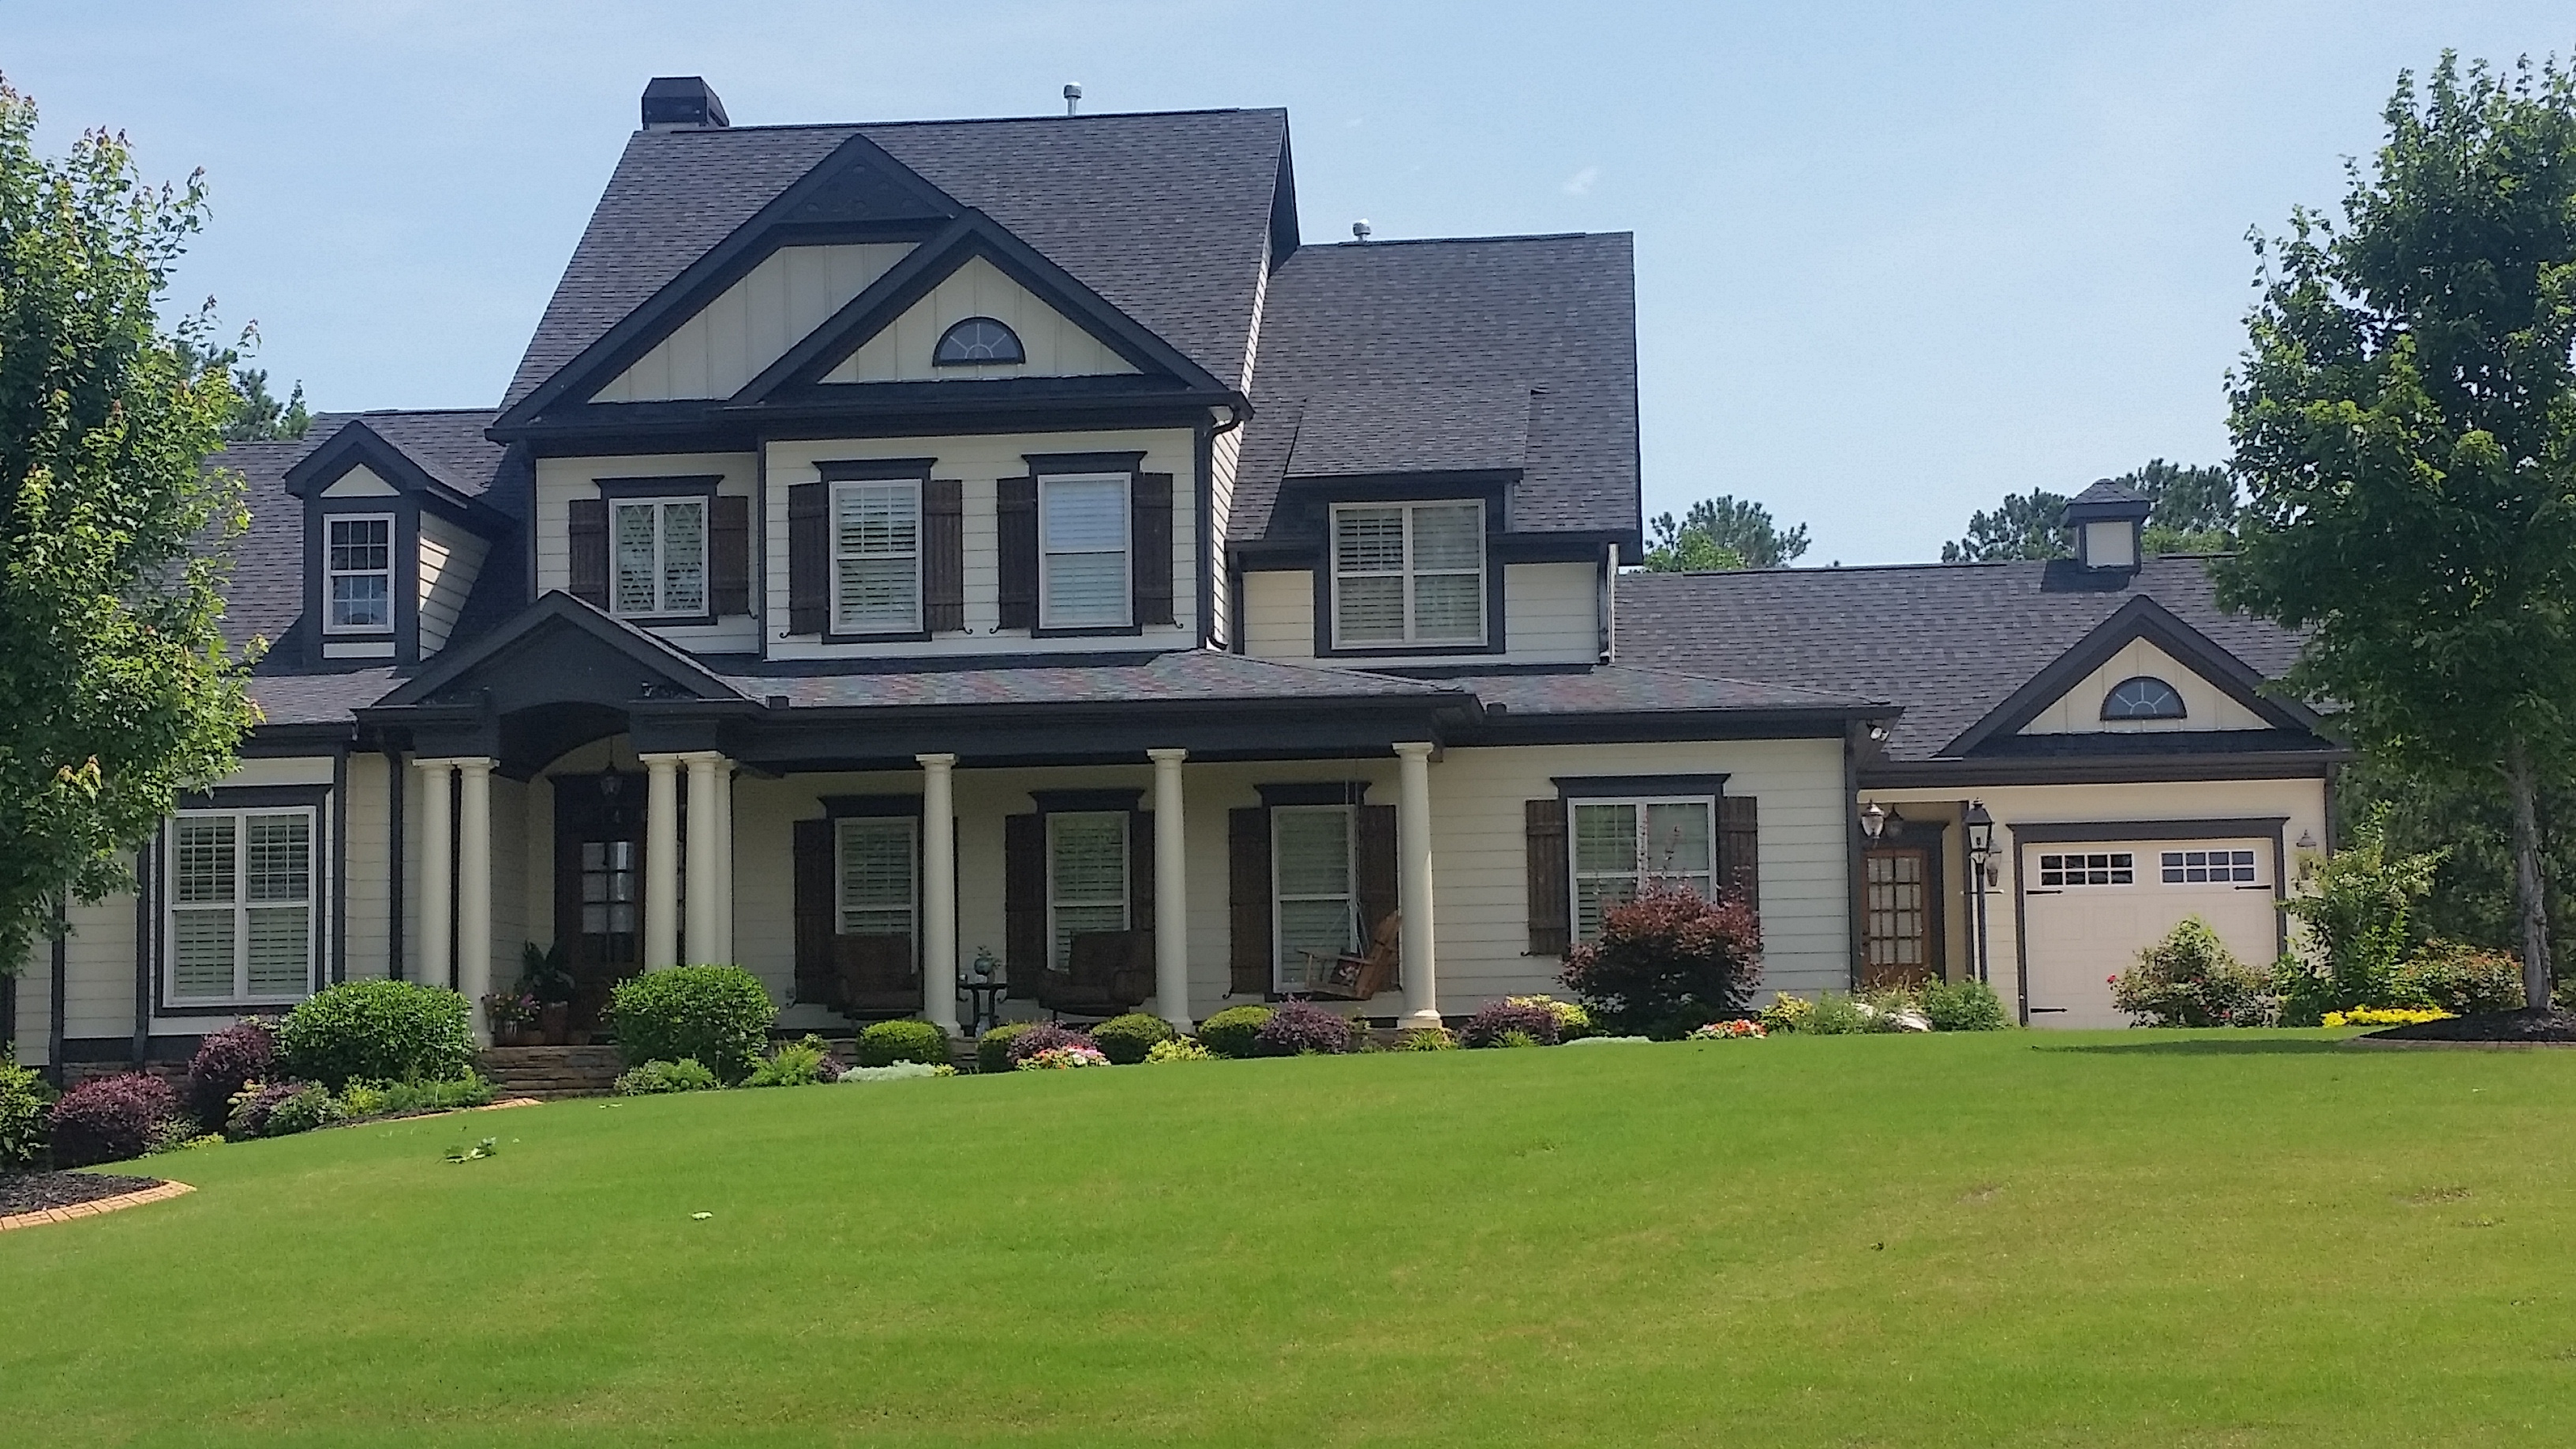 The Roof Group, LLC. image 0